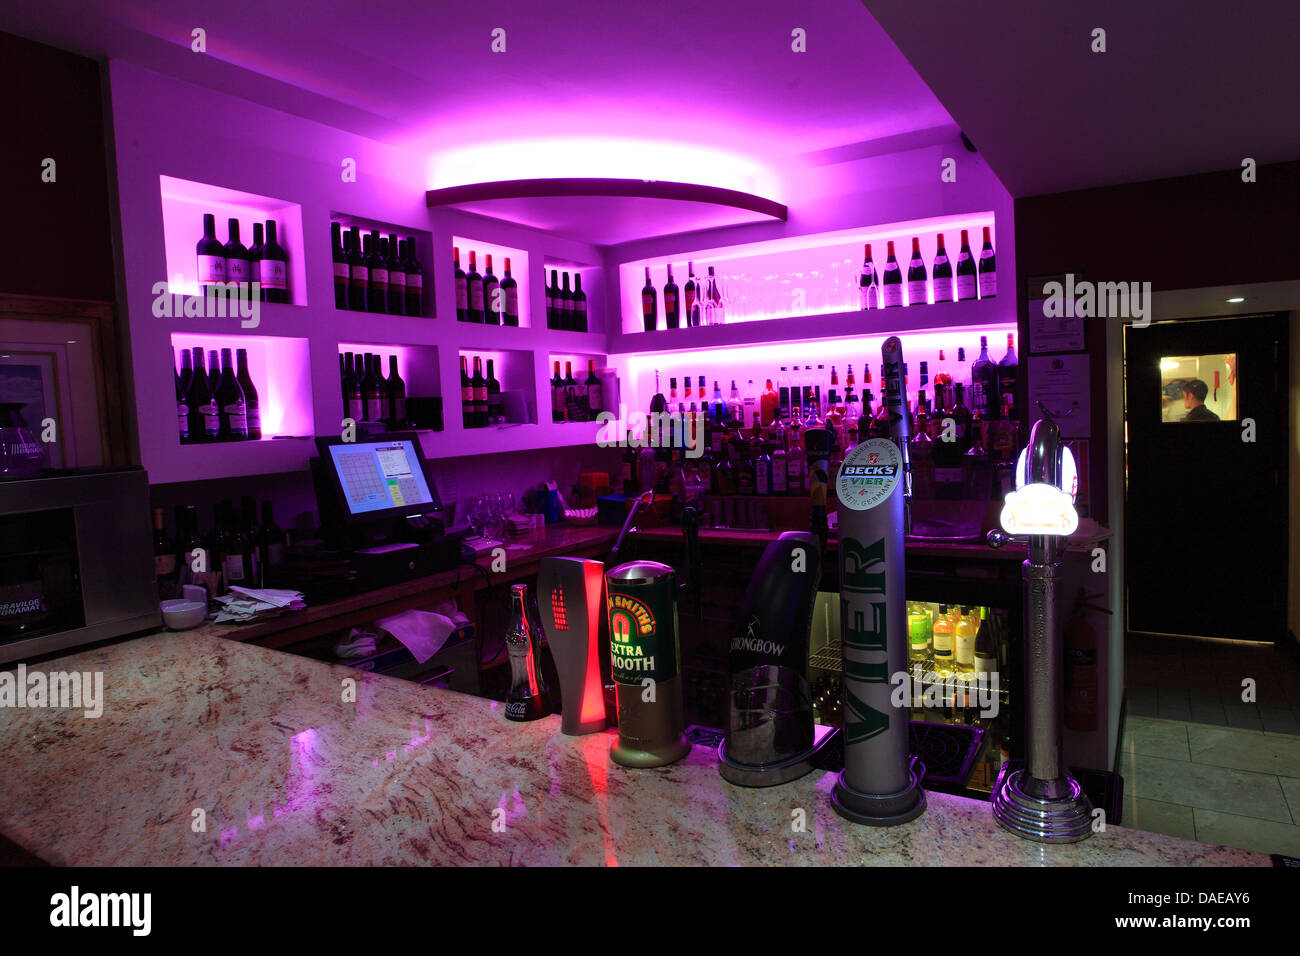 Cool Bar Interiors Stock Photos & Cool Bar Interiors Stock Images ...